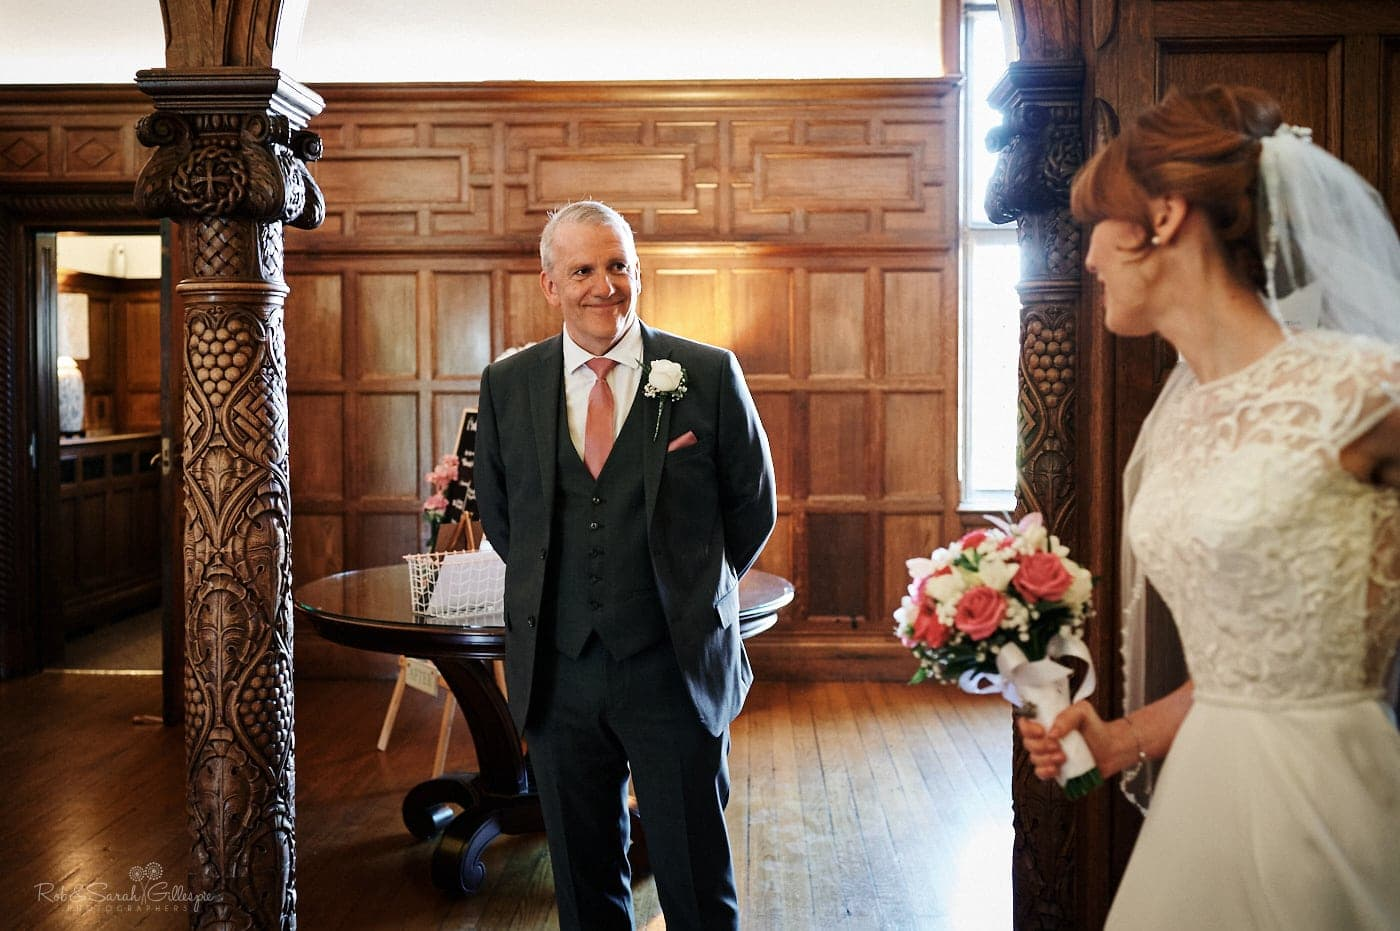 Bride's father smiles at her as he sees her in wedding dress for first time